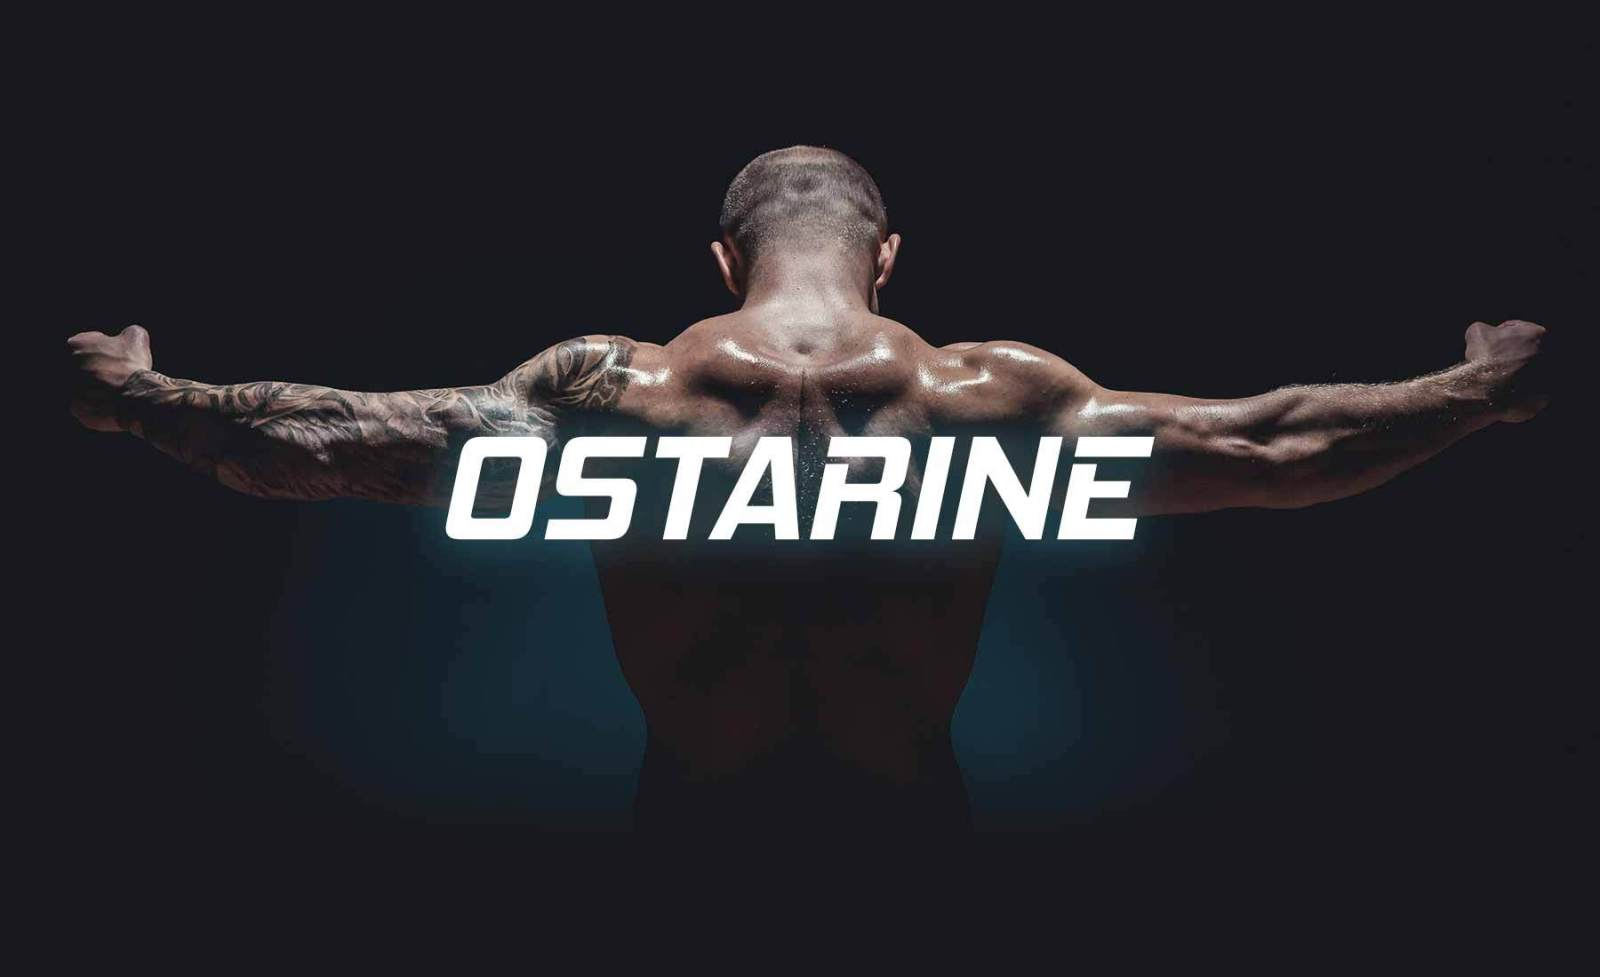 APH SCIENCE & OSTARINE MK-2866 REMARKABLE BENEFITS